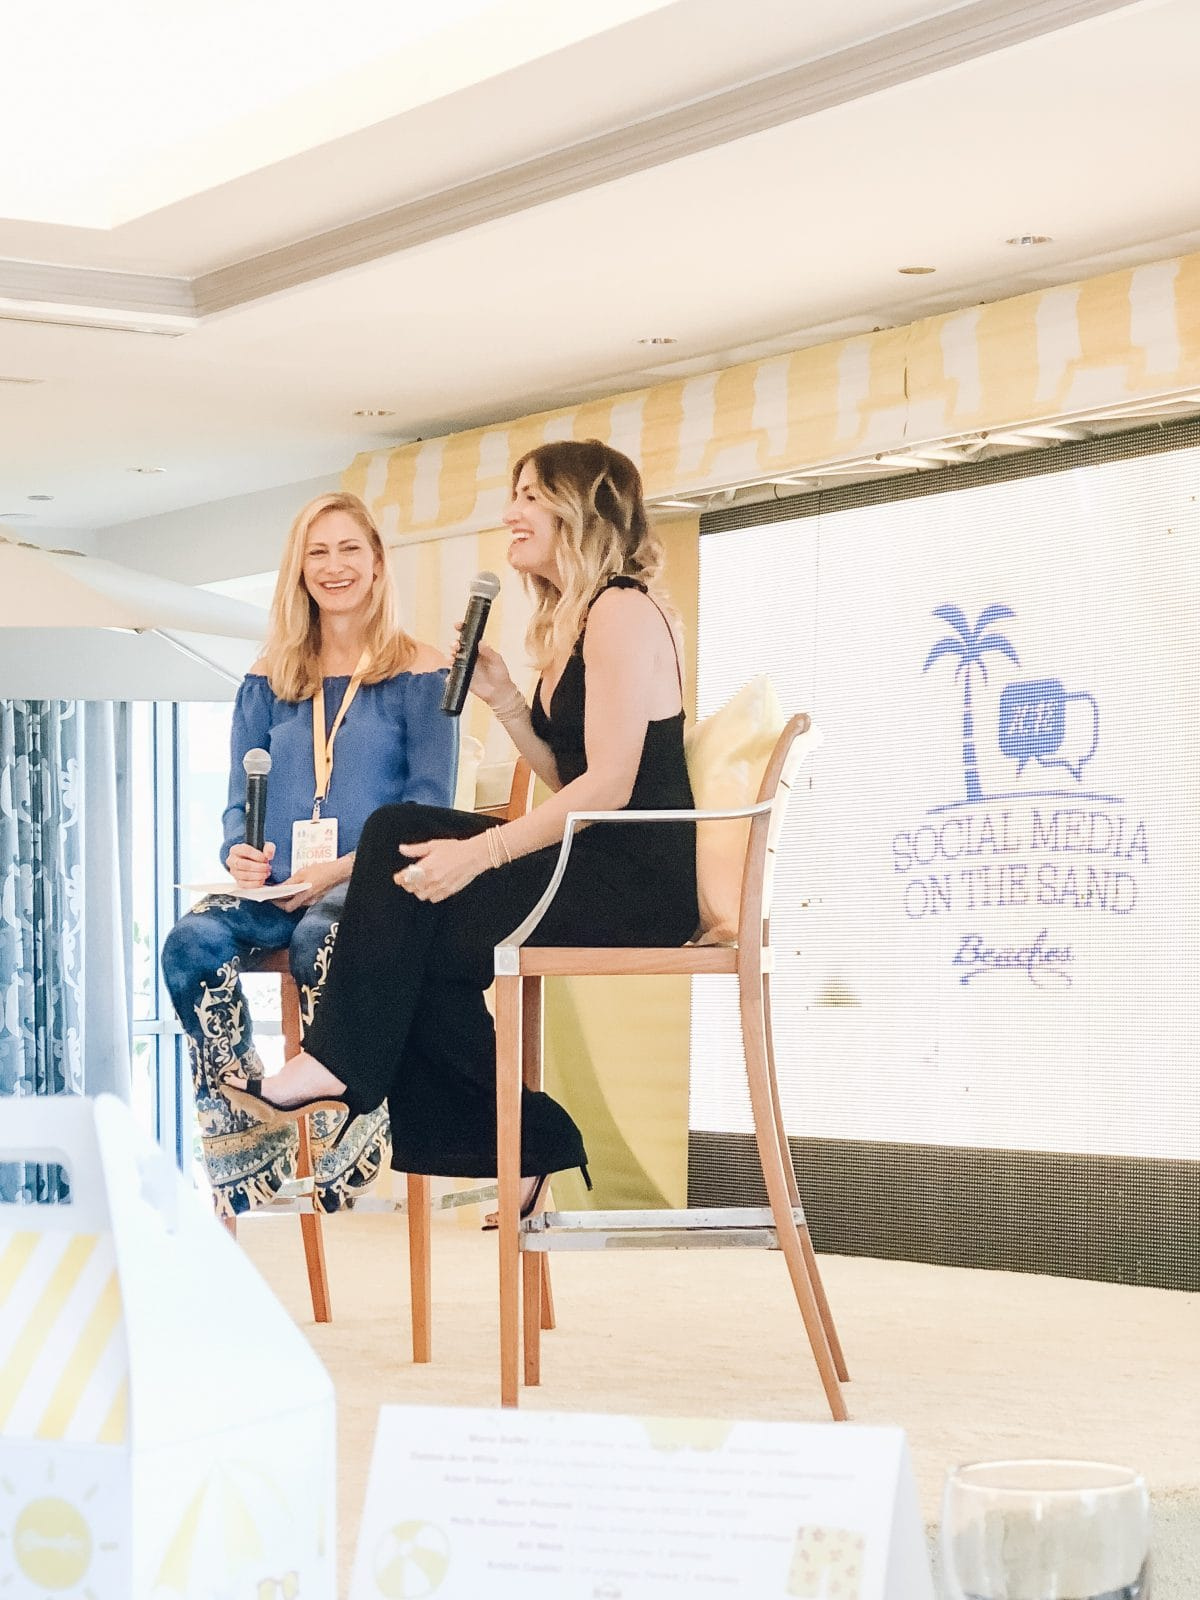 Beaches Moms Social Media on the Sand 2018 Conference - chatting with Alli Webb, owner of Drybar